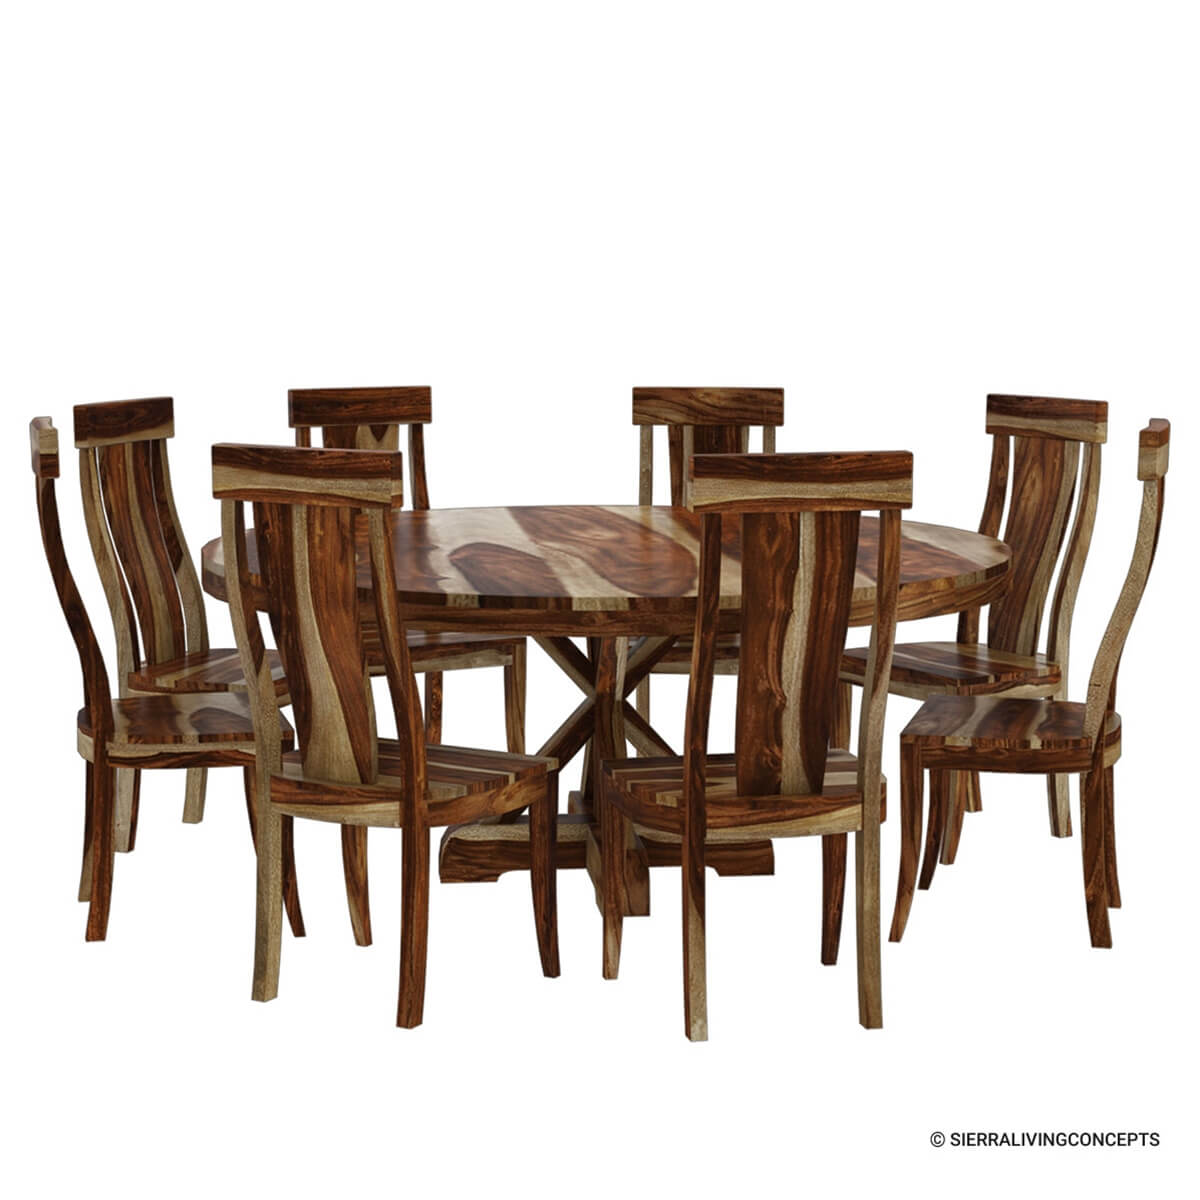 Dining Room Sets Wood: Bedford Rustic Solid Wood X Pedestal 10 Piece Round Dining